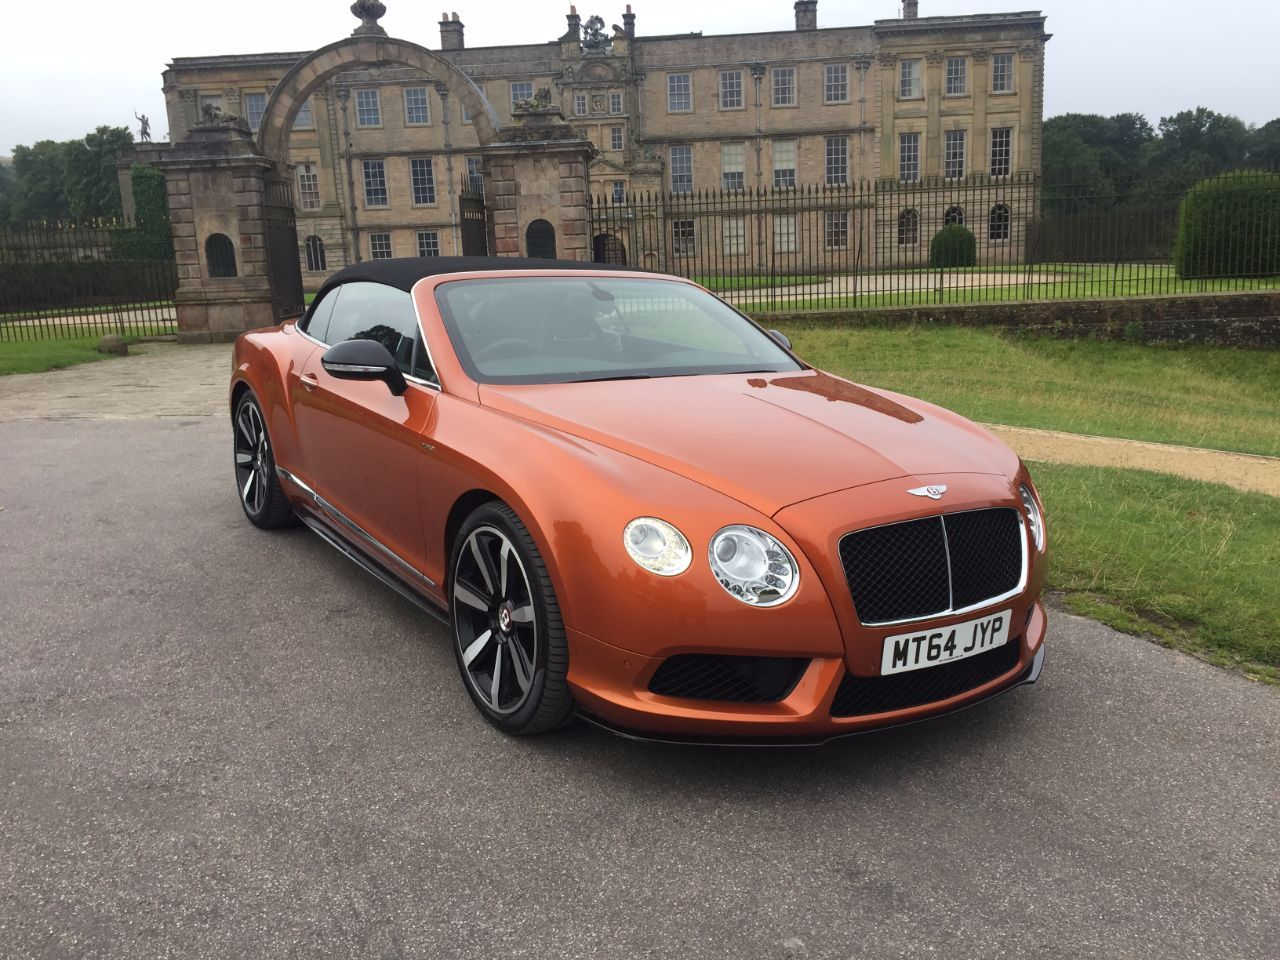 Bentley Continental GTC 4.0 V8 S 2dr Auto Convertible Petrol Orange